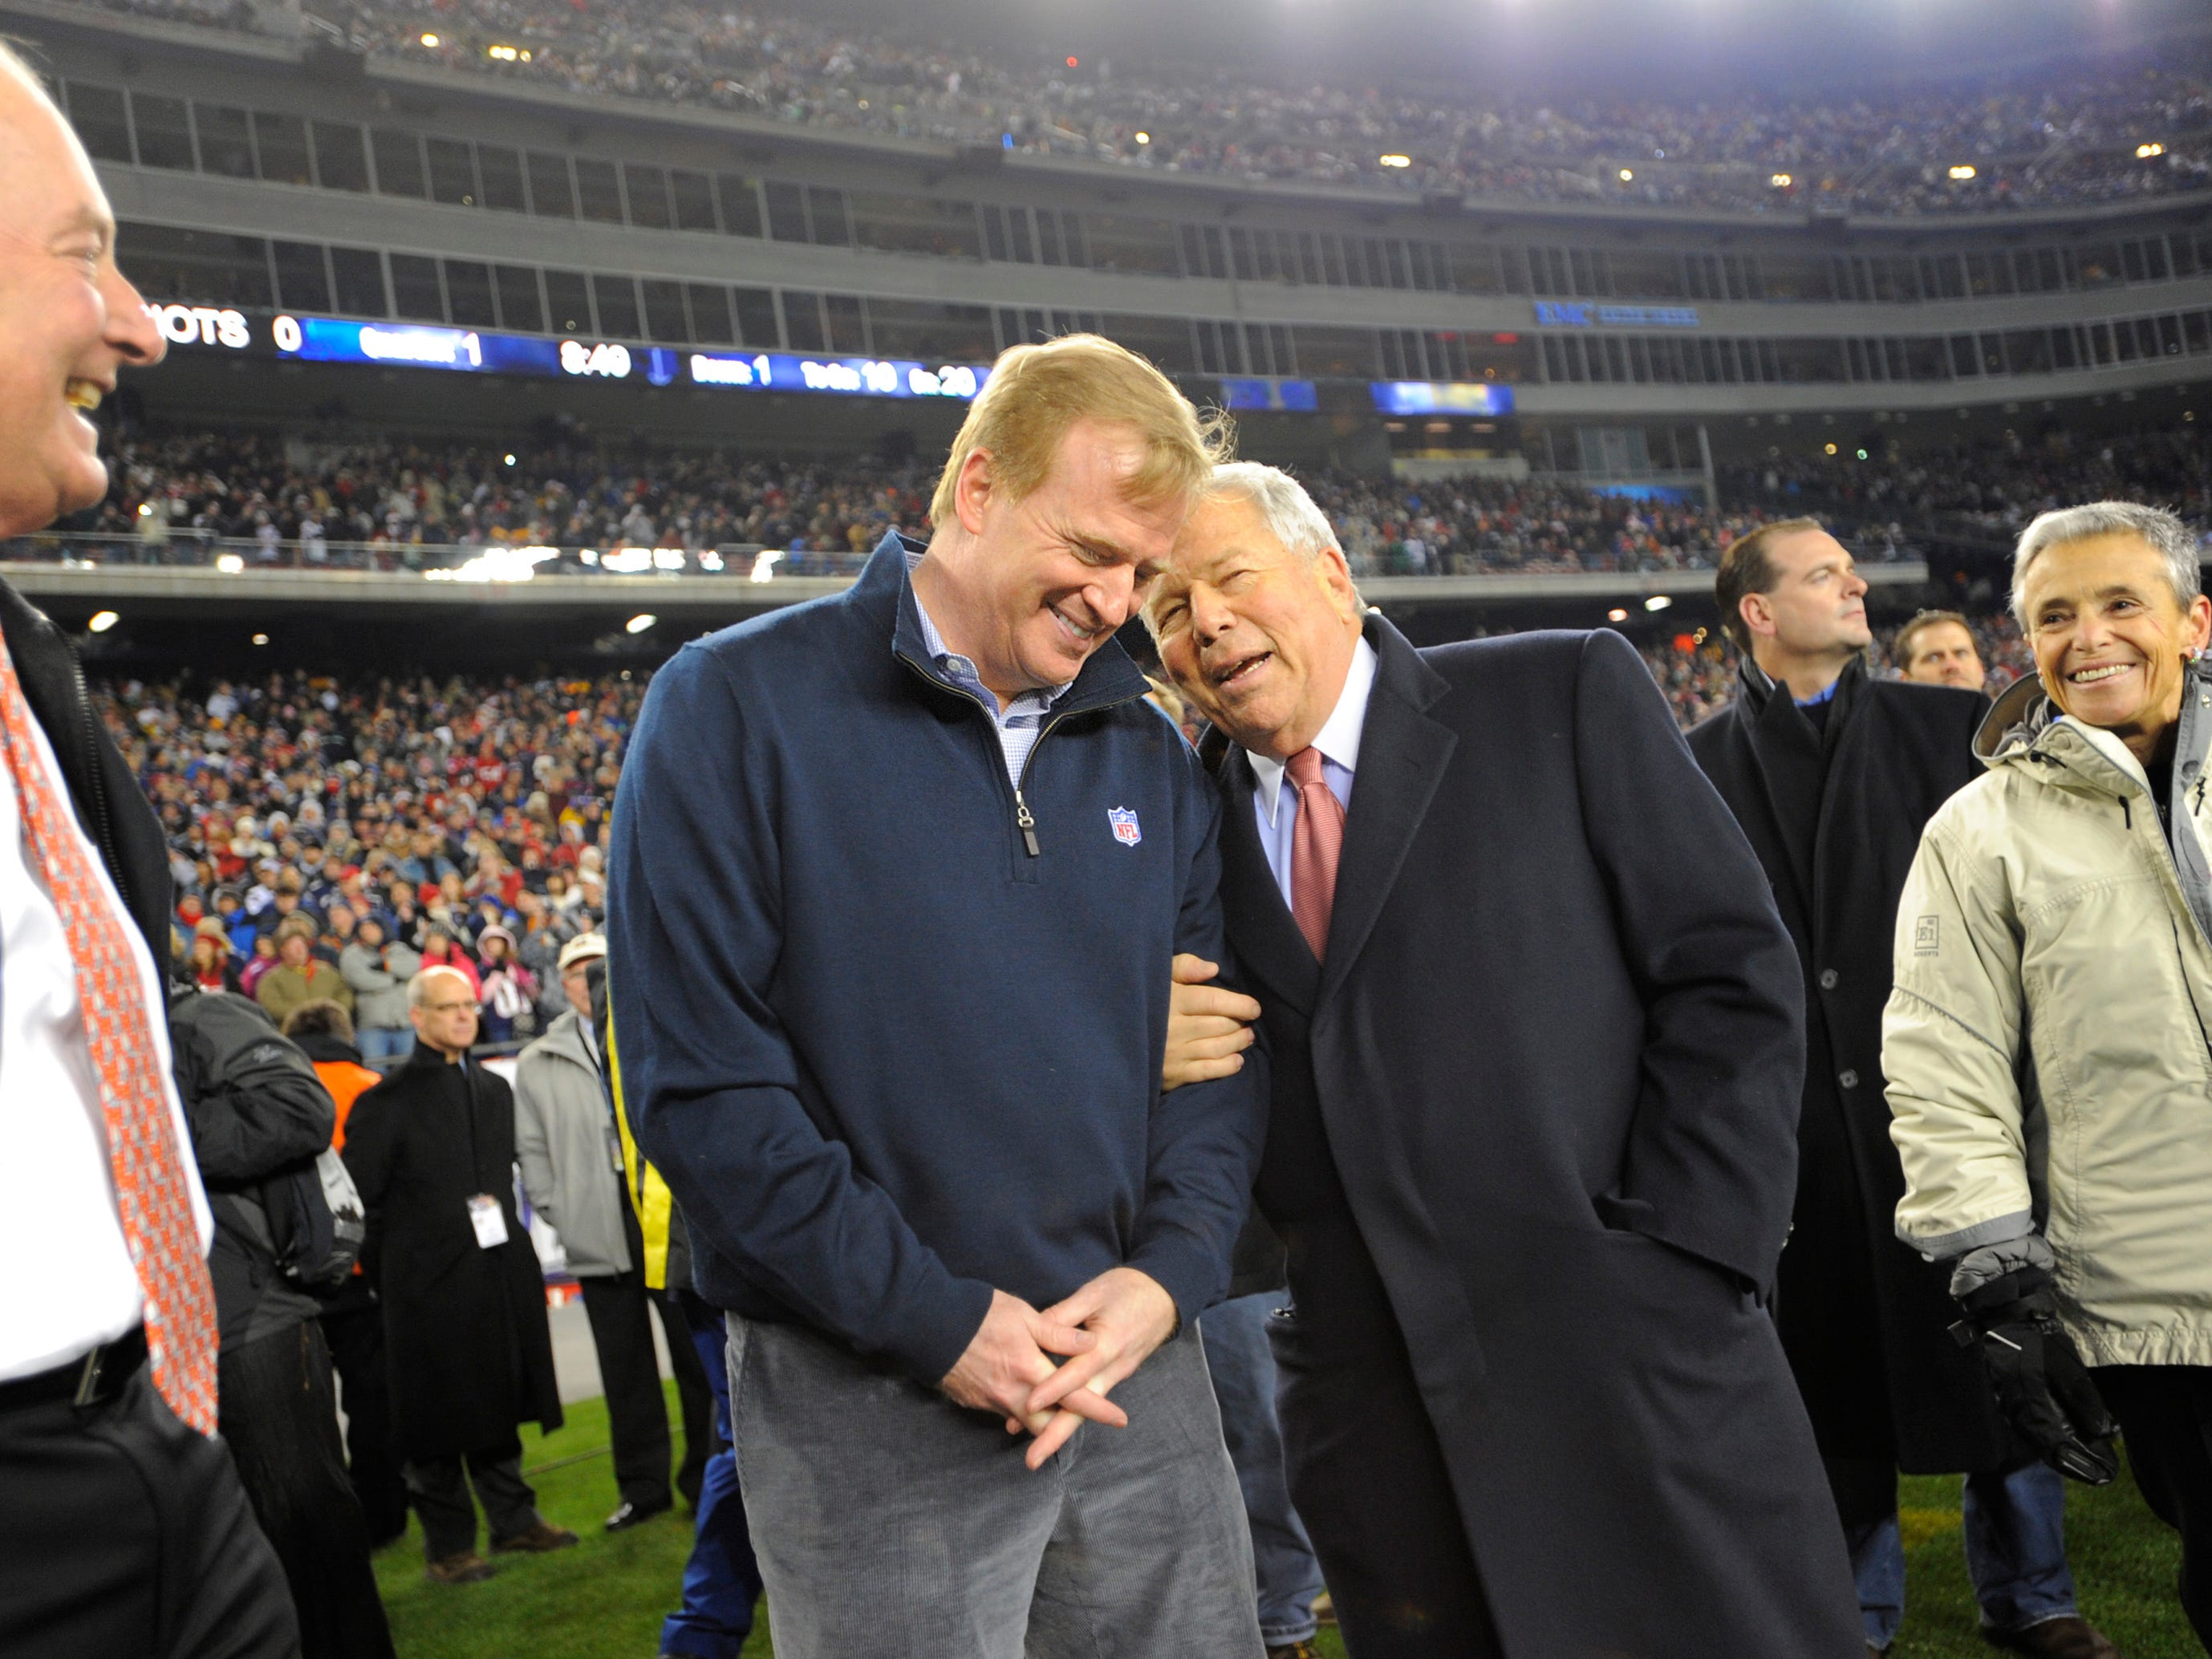 NFL Commissioner Rodger Goodell, second from right, talks with Kraft  before a game at Gillette Stadium.